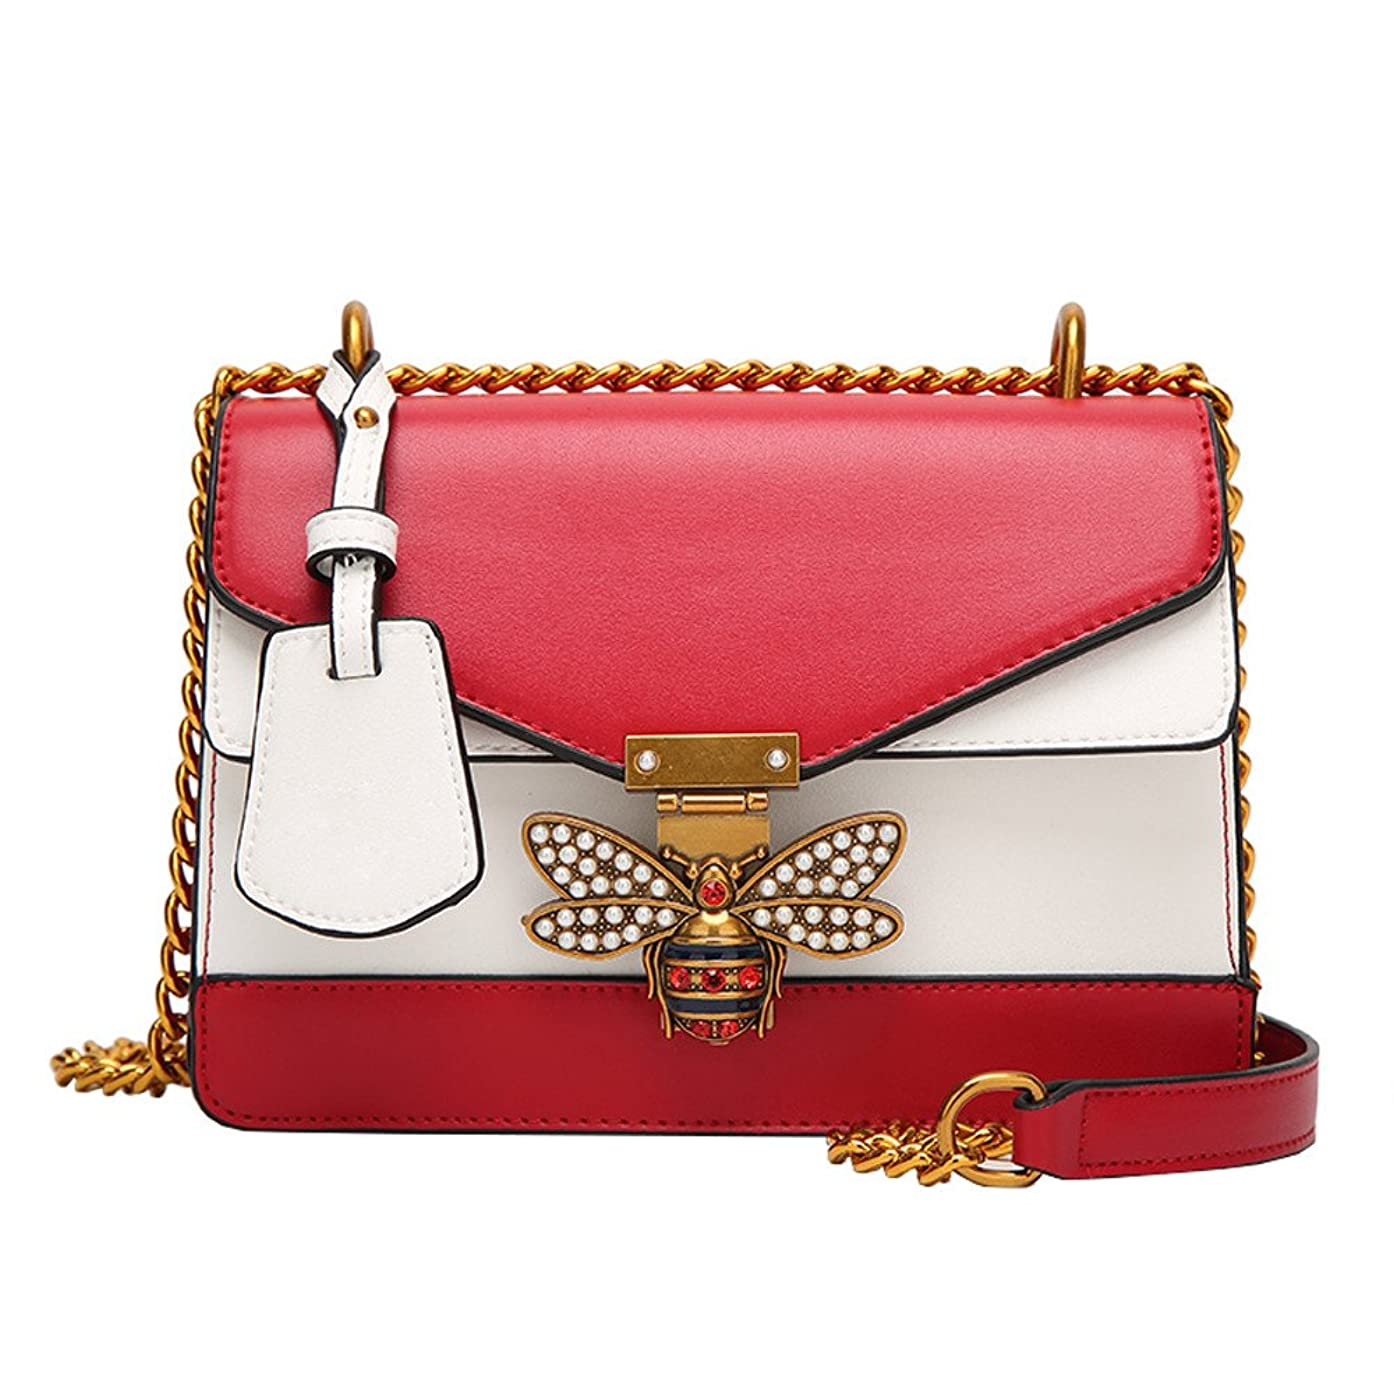 JJLIKER Designer Color Matching Shoulder Bag Fashion Bee Leather Handbag for Women, Fashion Chain Crossbody with Pearl